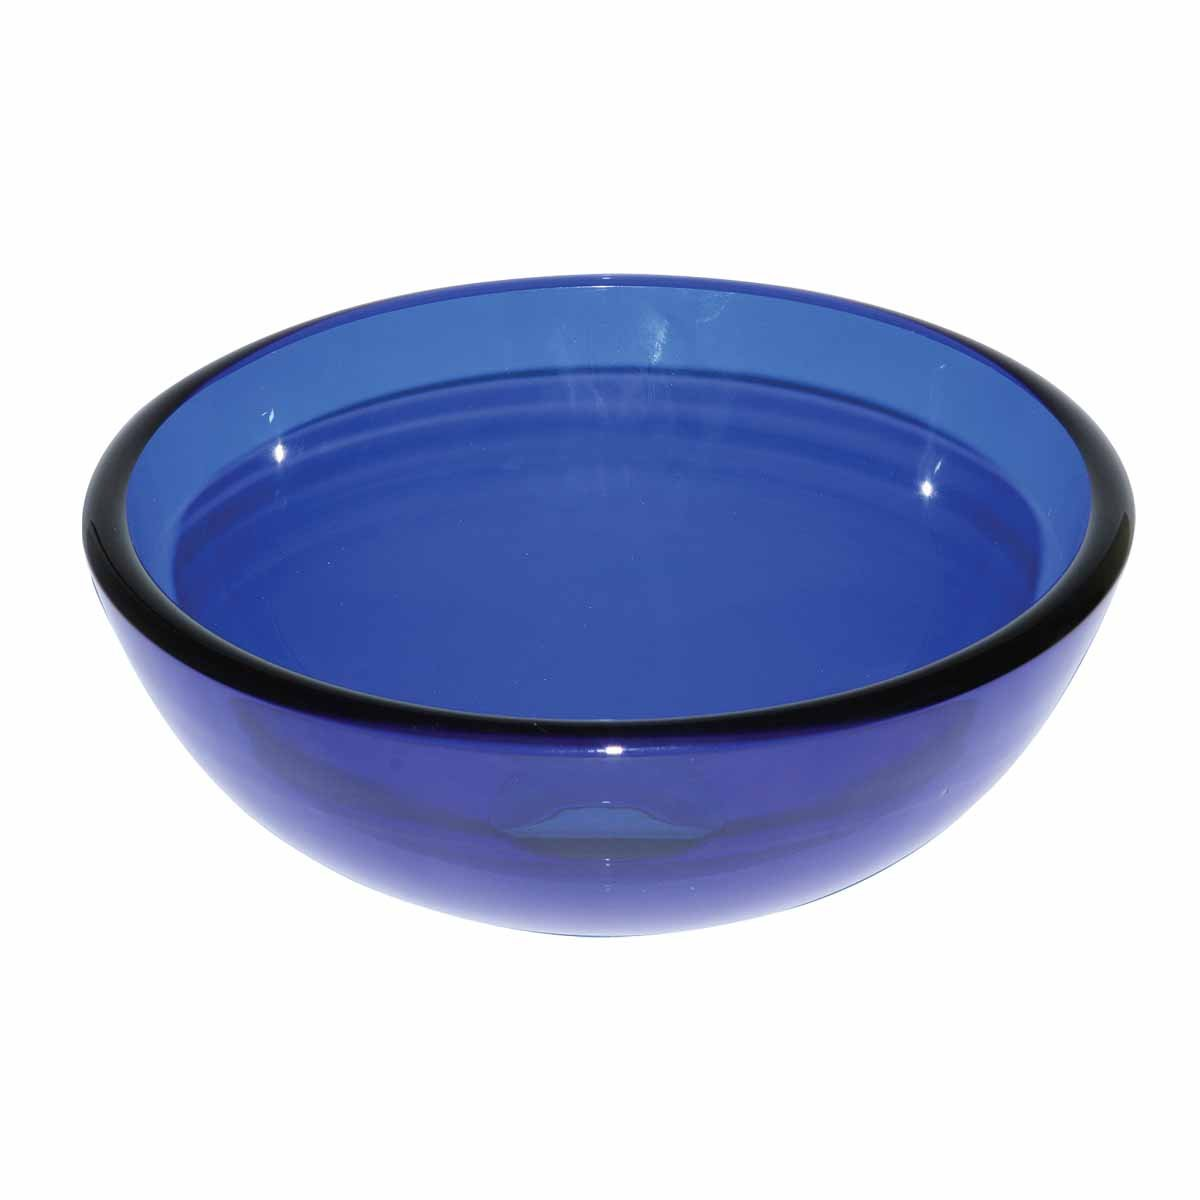 Blue Glass Vessel Sink With Drain, Mounting Ring, Tempered Glass Mini Bowl Sink | Renovator's Supply by Renovator's Supply